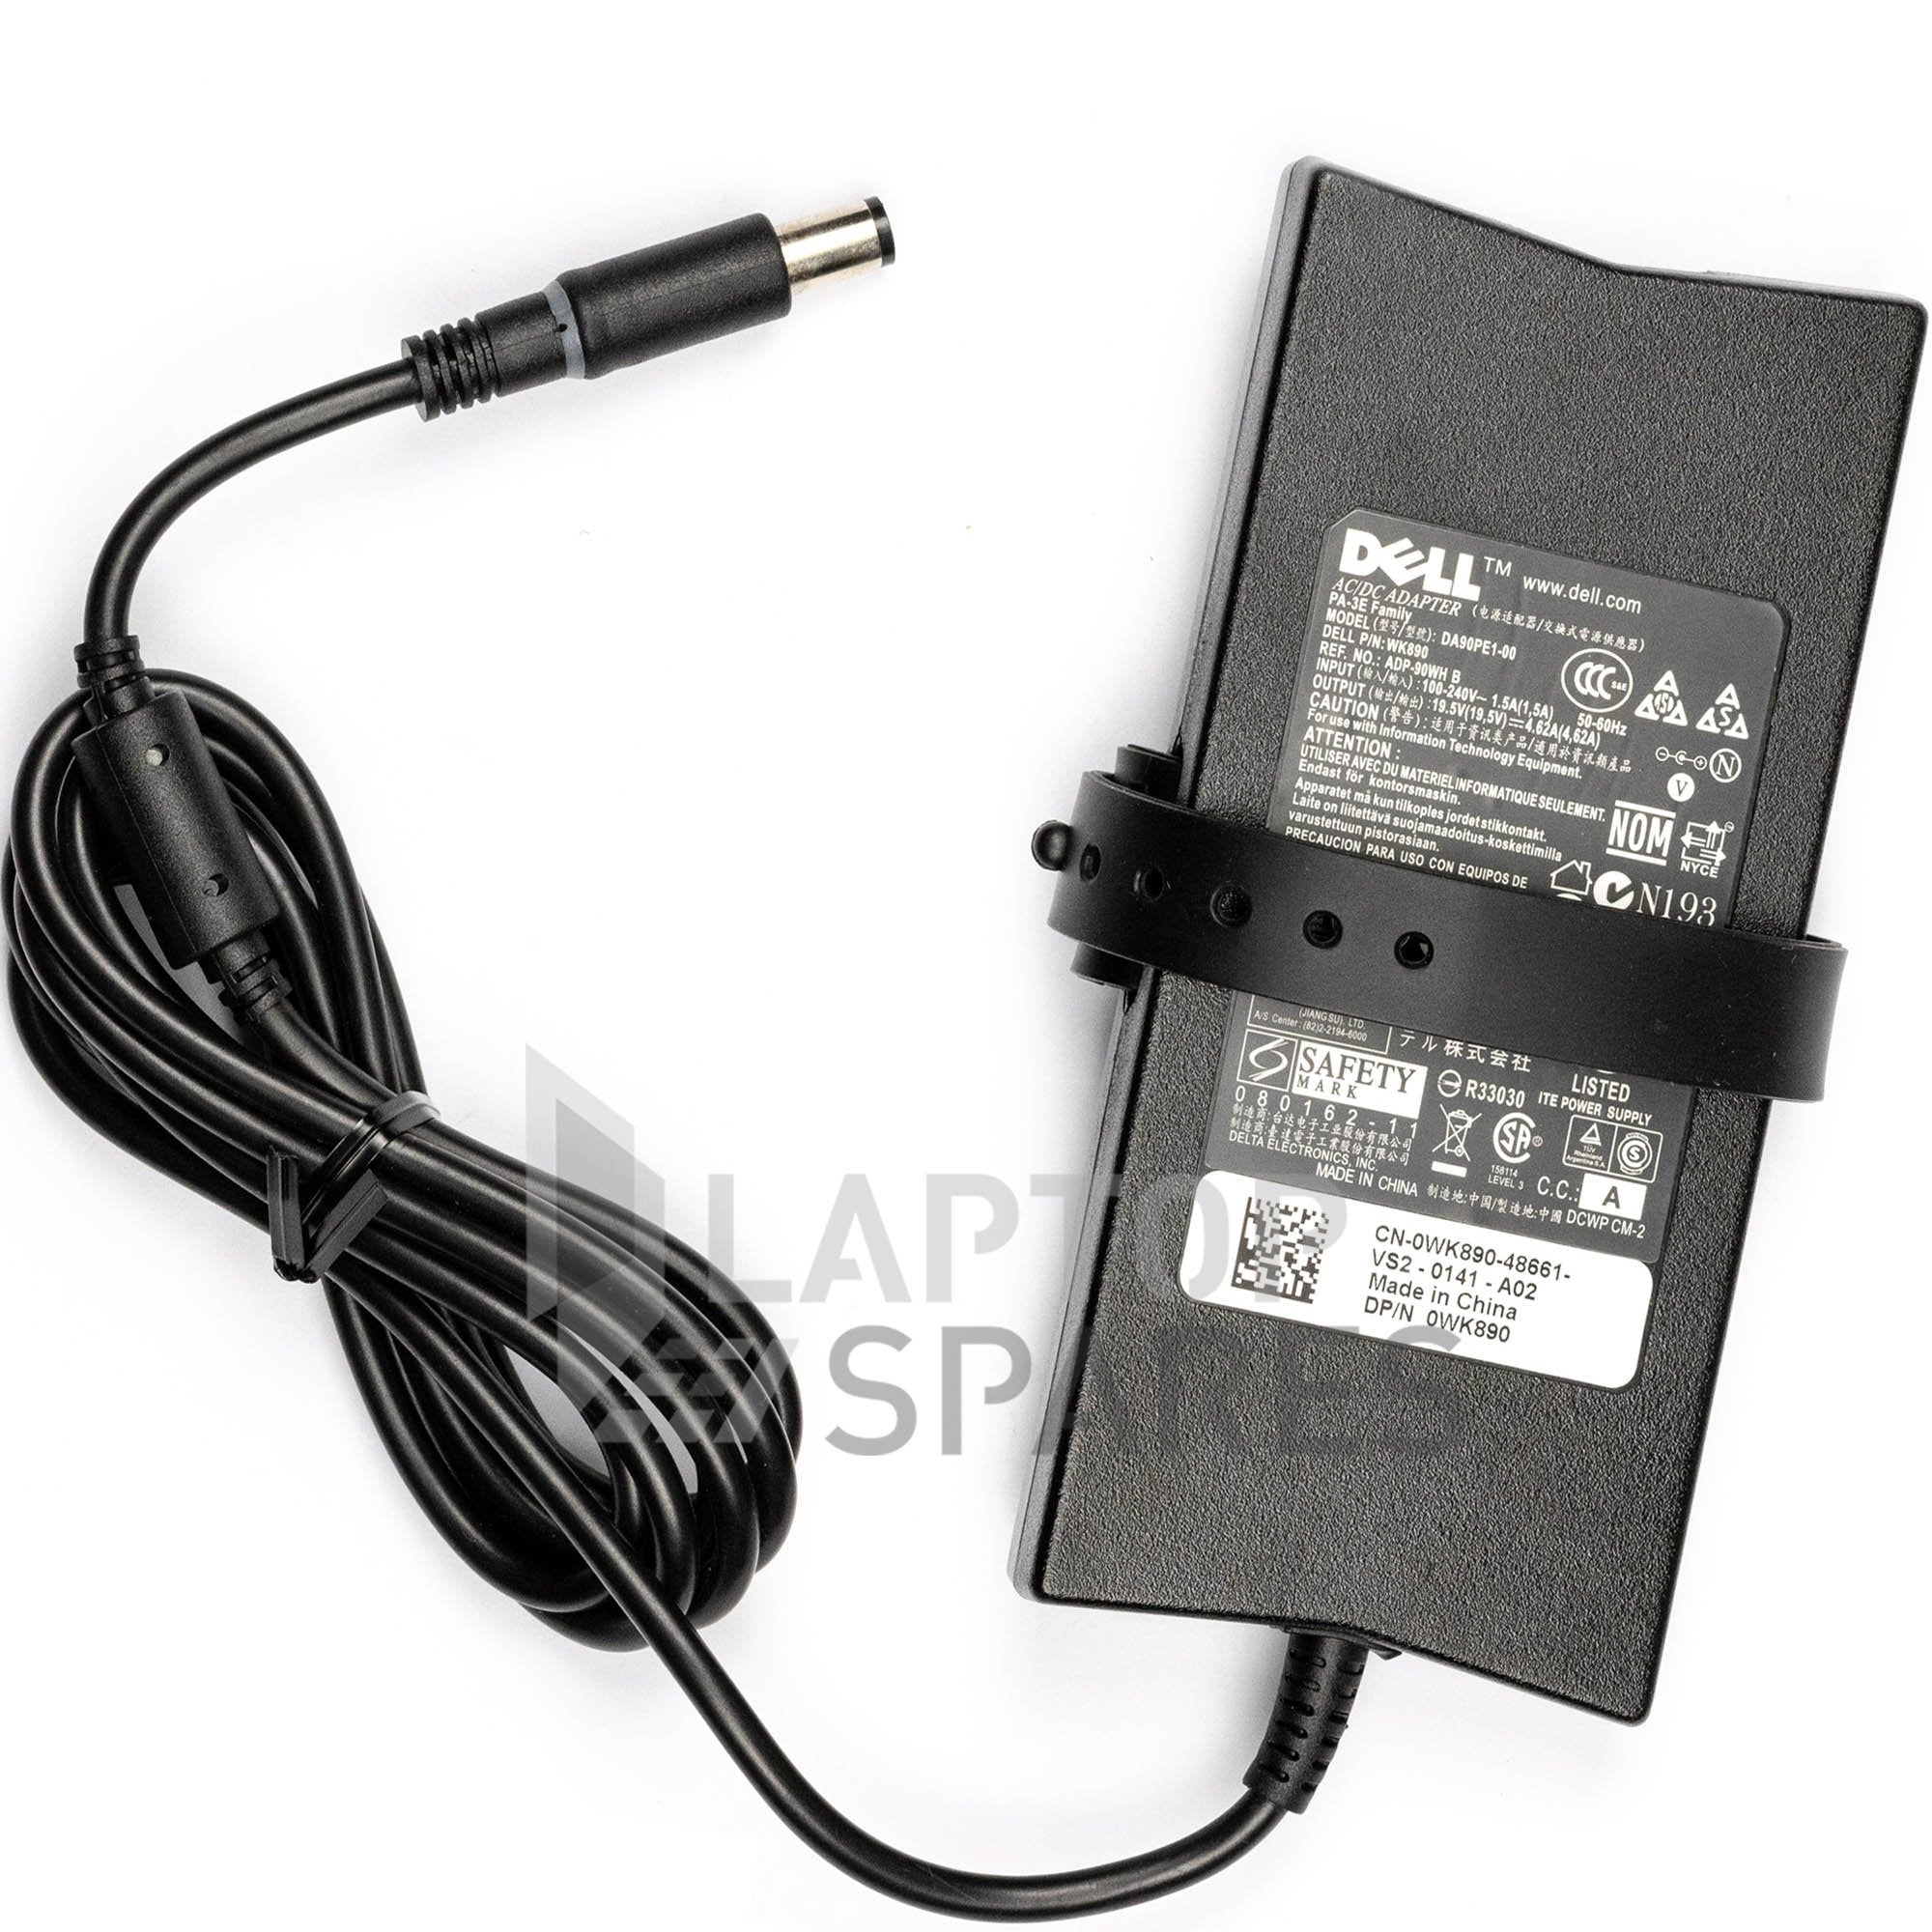 Dell Inspiron 3420 3421 3437 Laptop Slim AC Adapter Charger